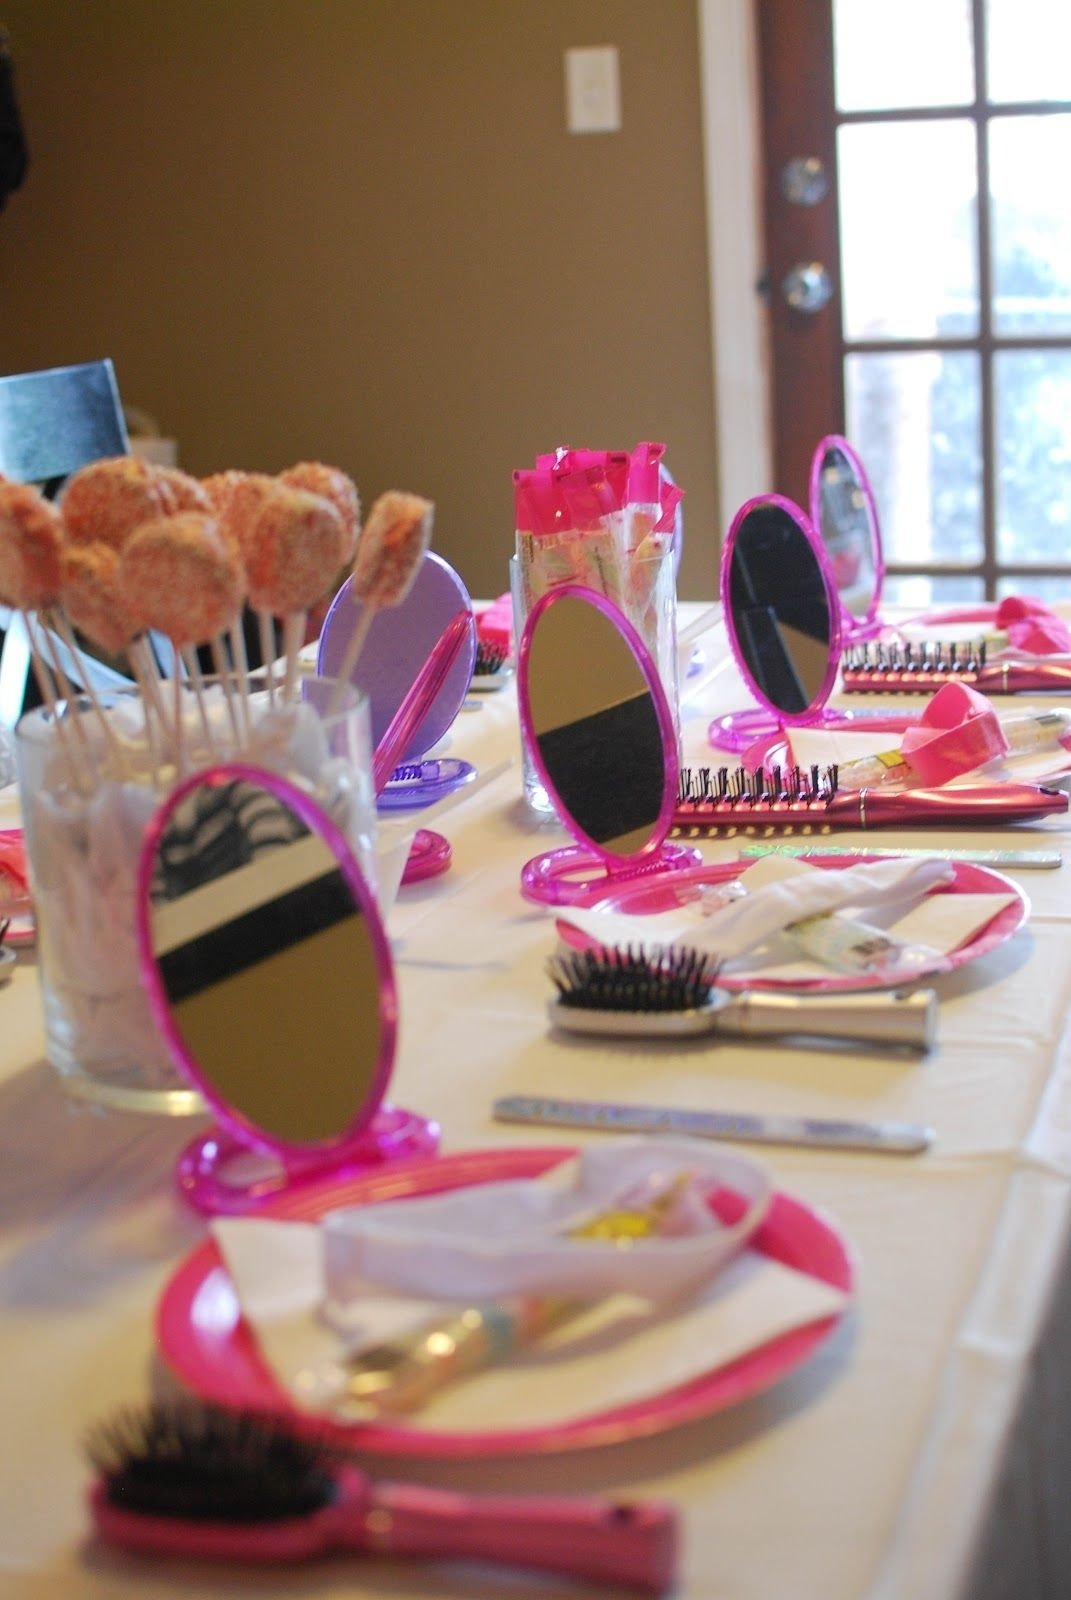 10 Fantastic Birthday Party Ideas For Girls spa party ideas for 8 yr old girls remember this for the twins via 12 2020